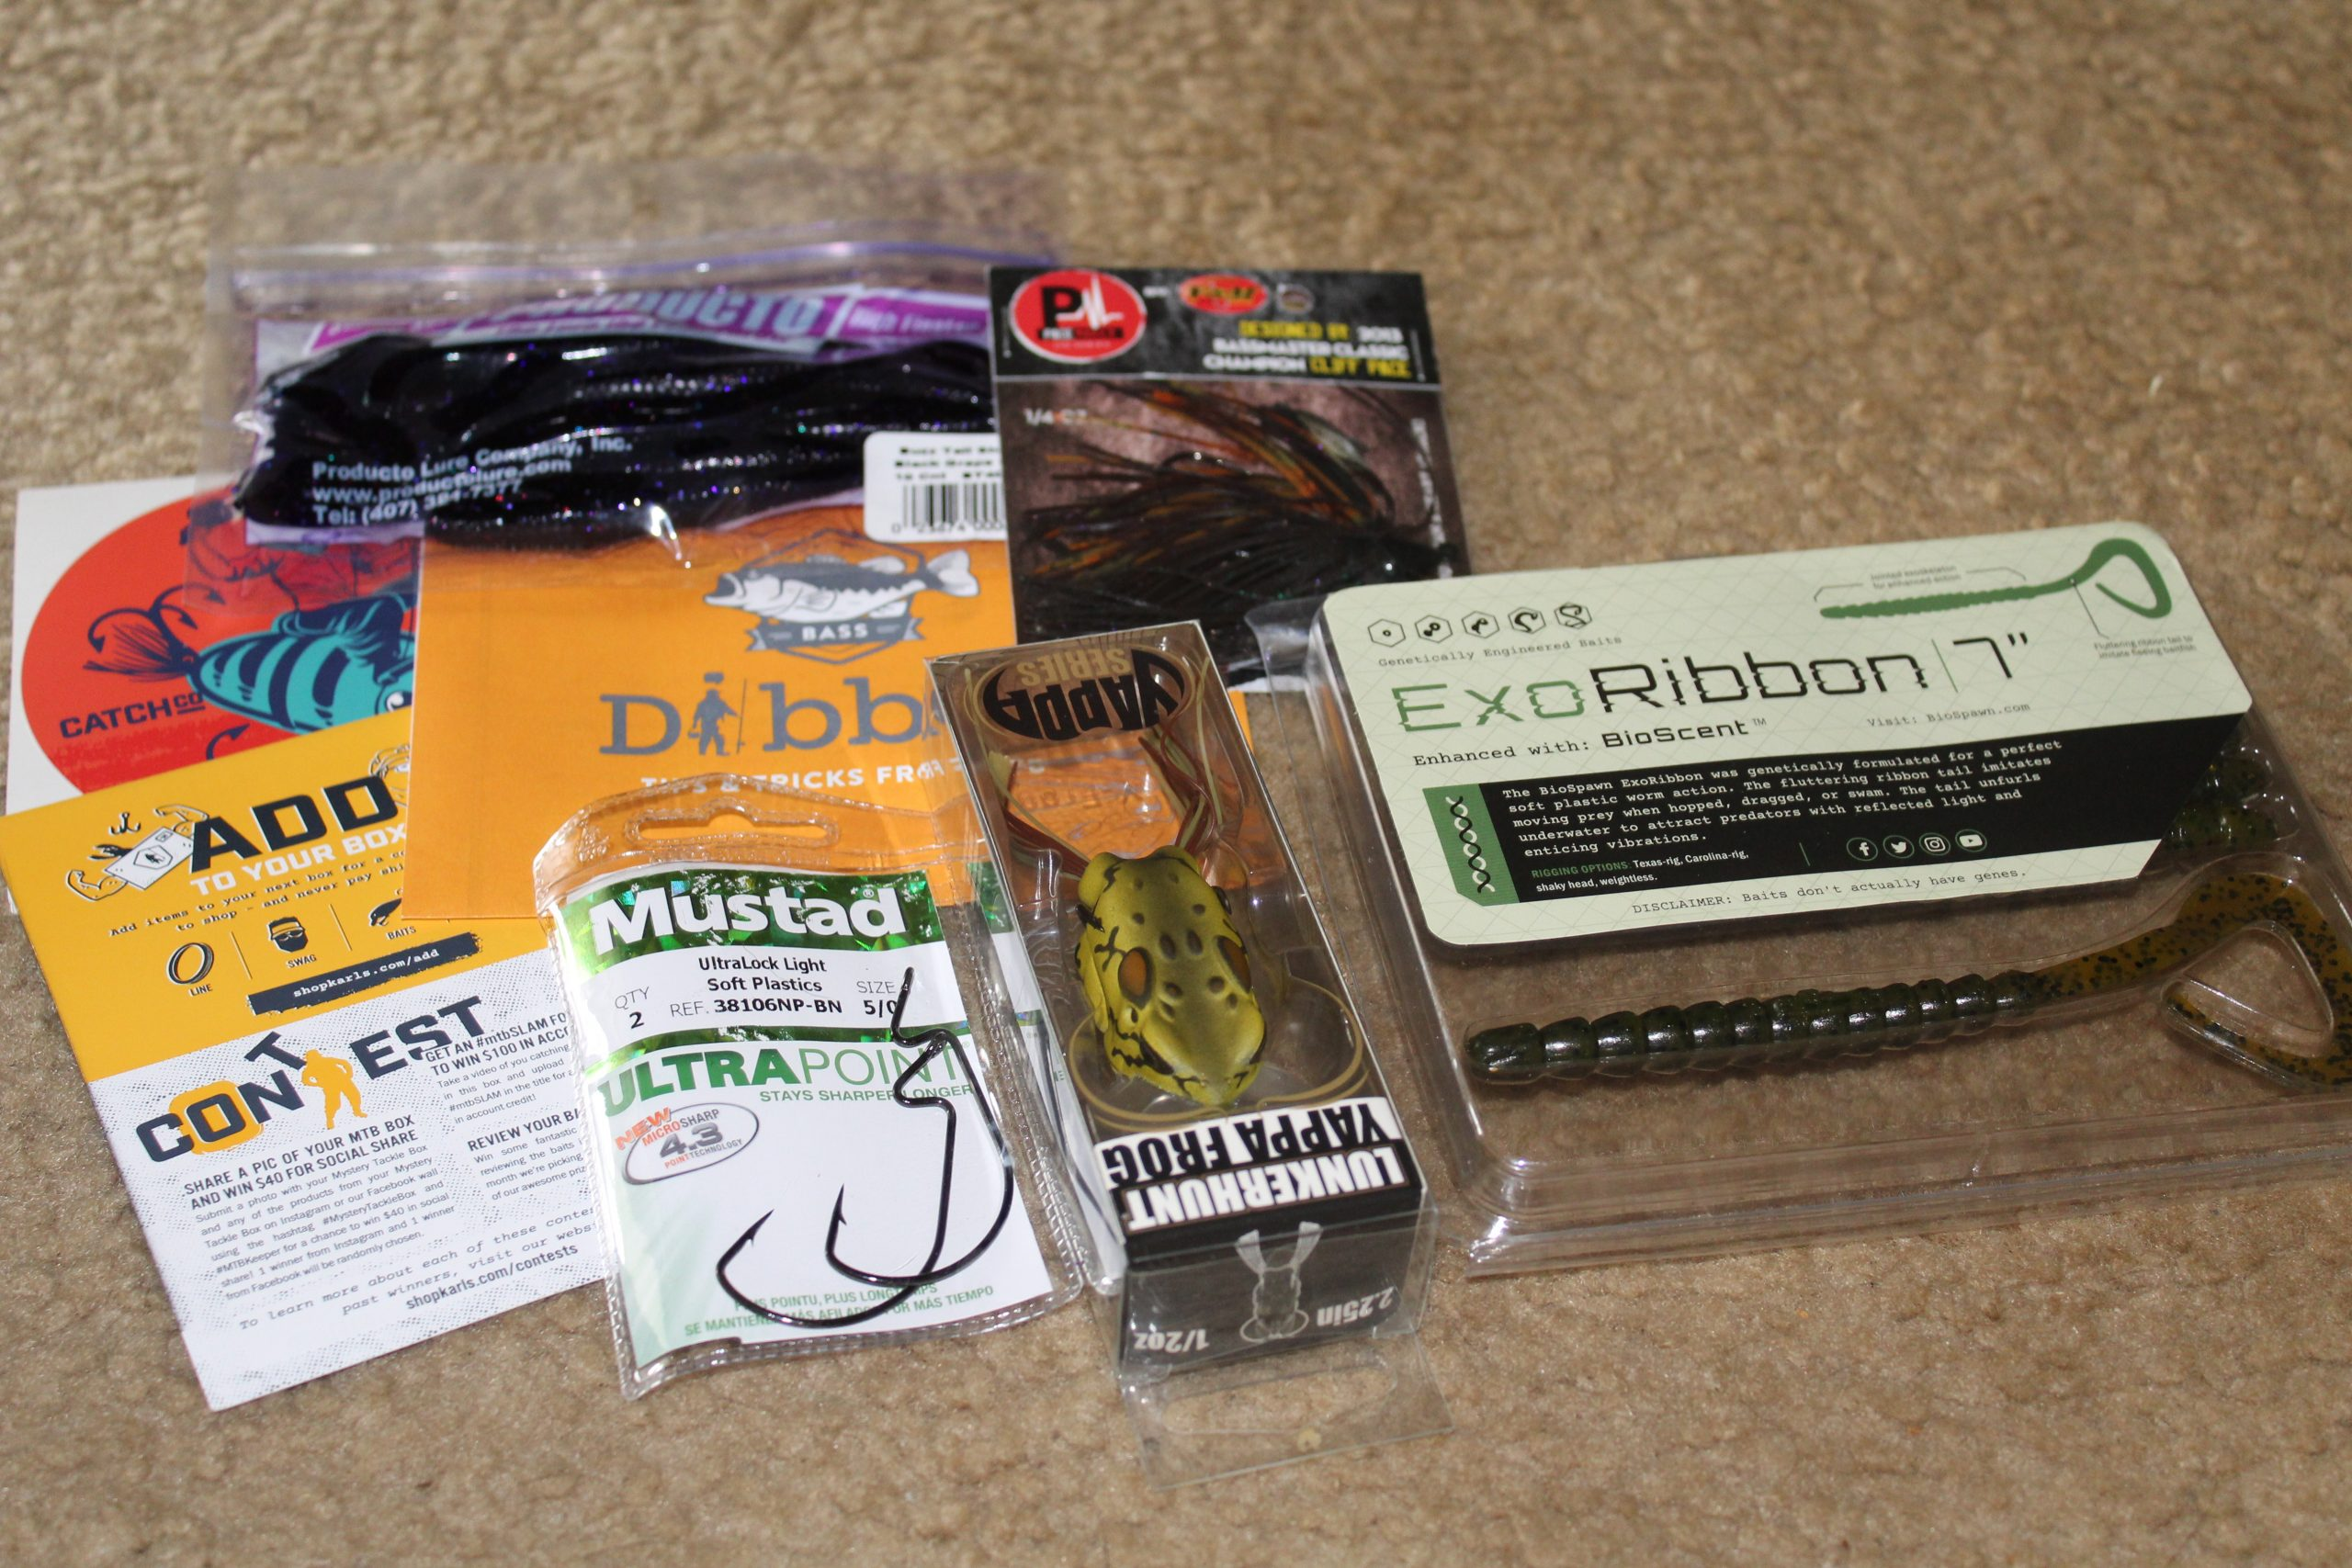 Mystery Tackle Subscription Box #Review #HGG19 #mysterytacklebox